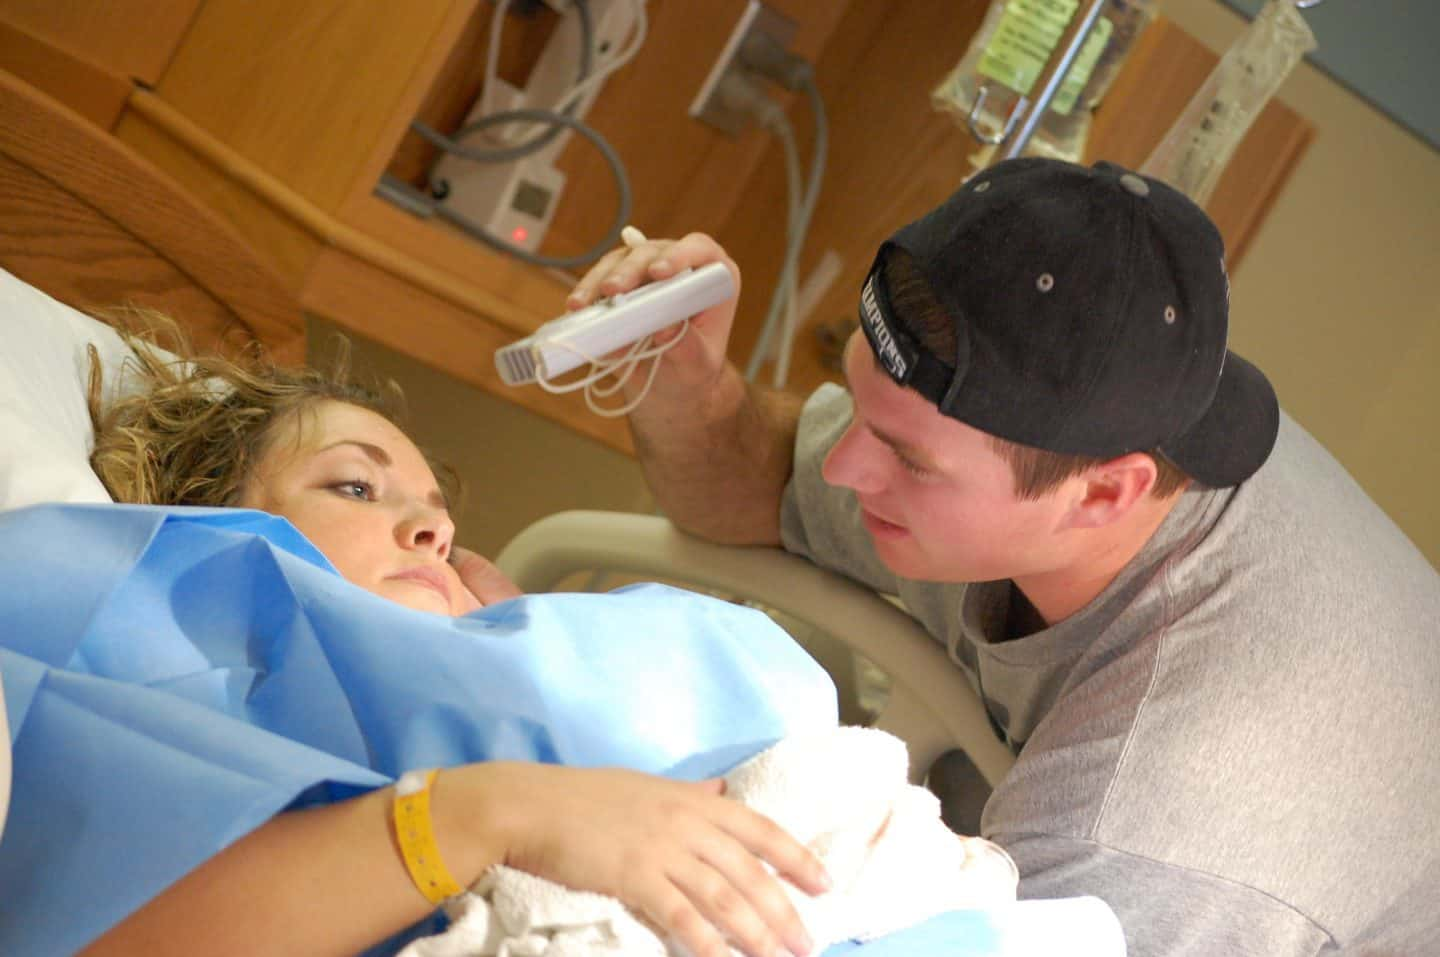 husband fanning wife during childbirth